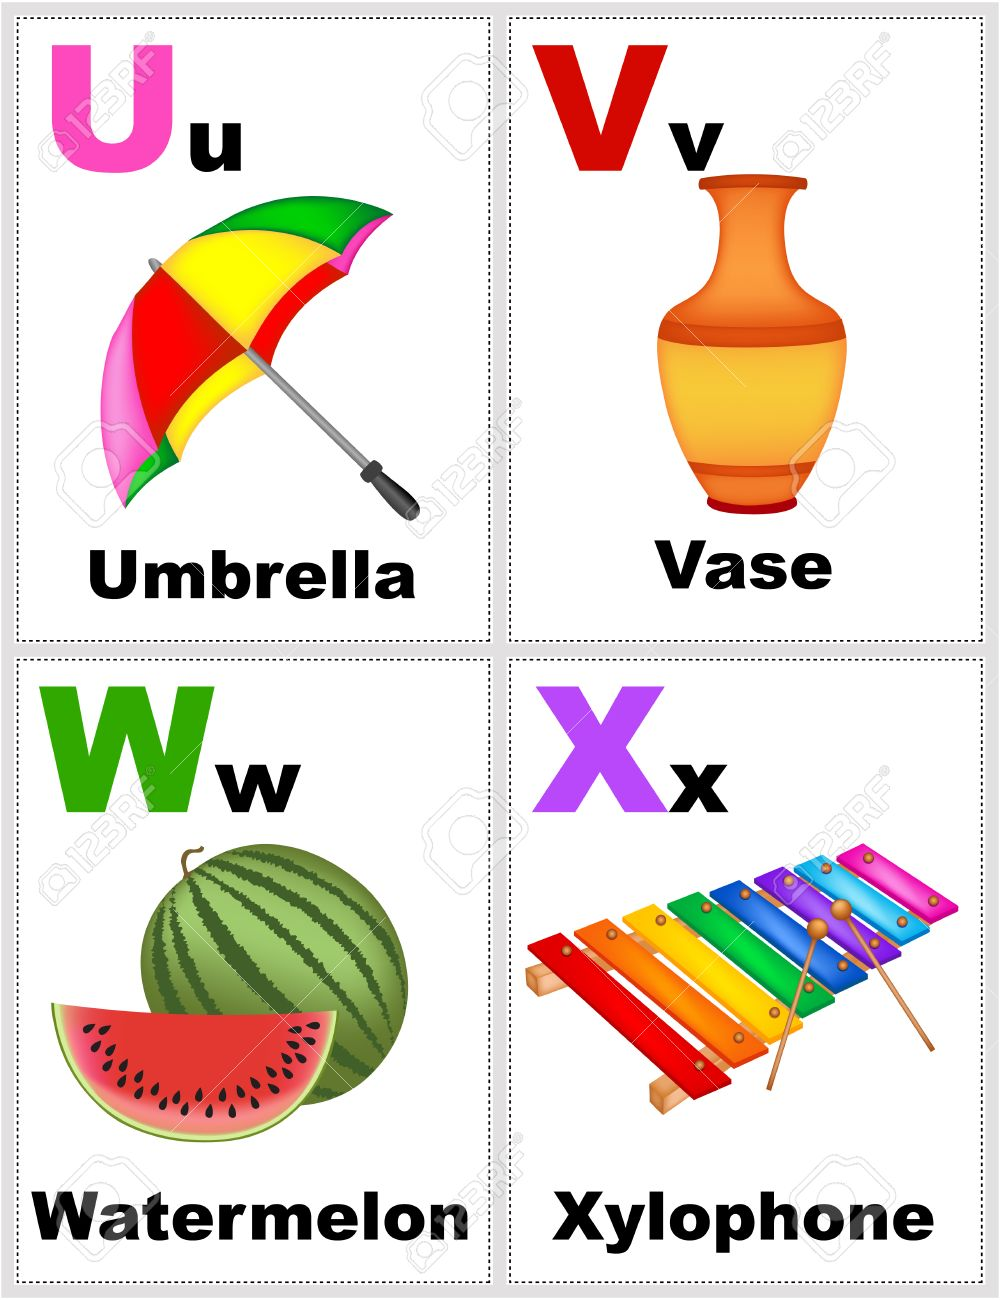 picture about Alphabet Printable Flash Cards named Alphabet printable flashcards selection with letter U, V, W,..